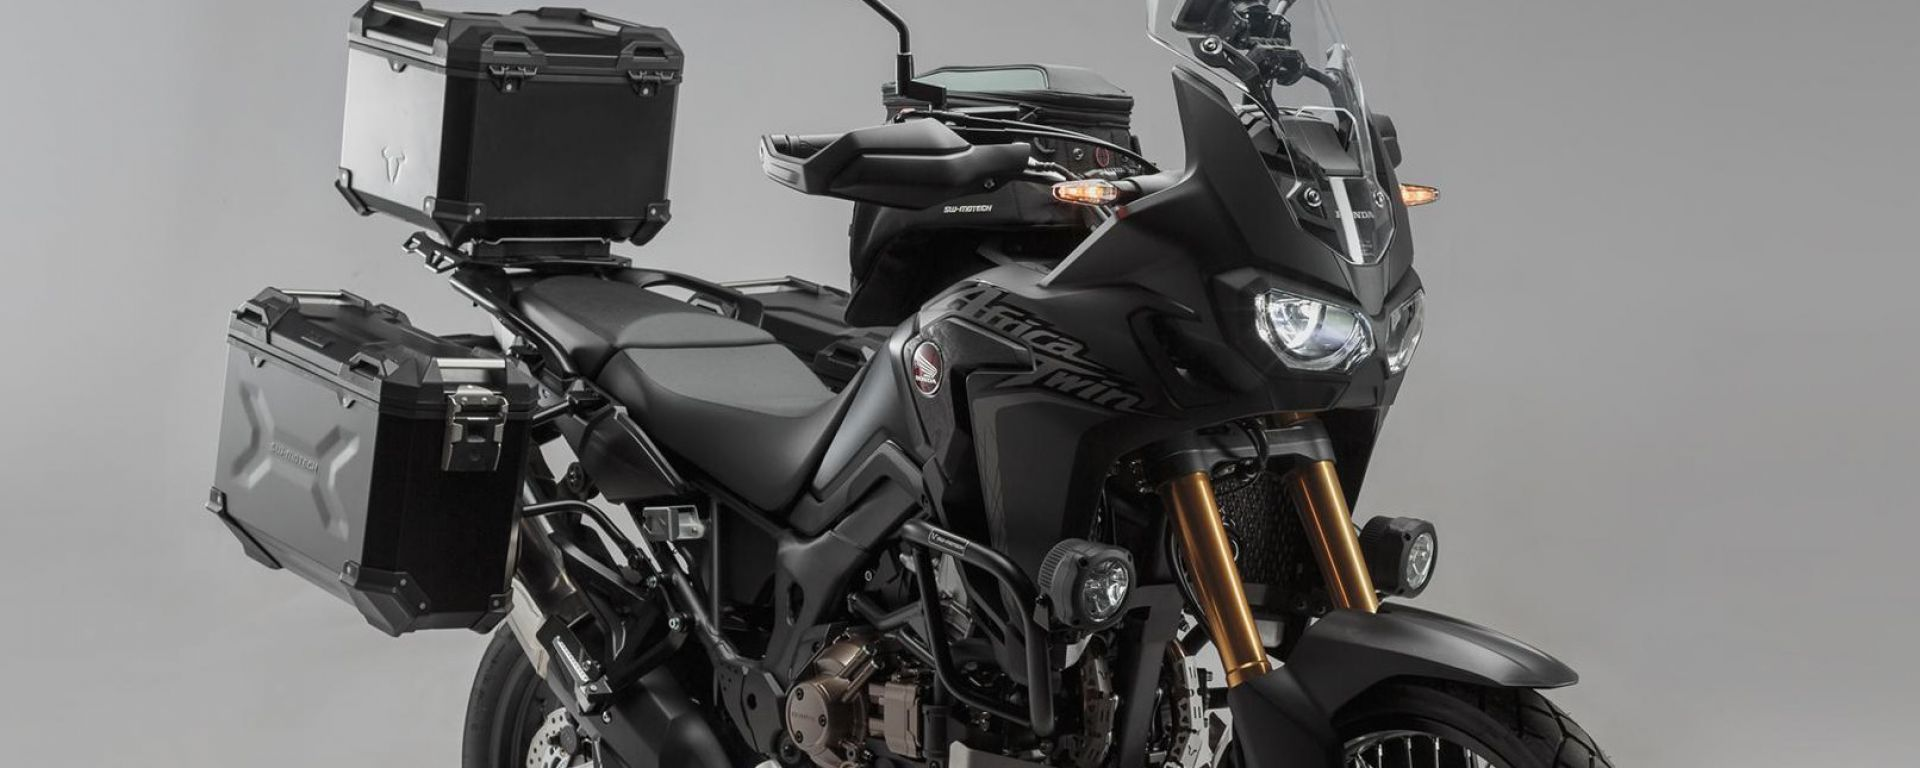 SW-Motech: kit accessori per Honda Africa Twin